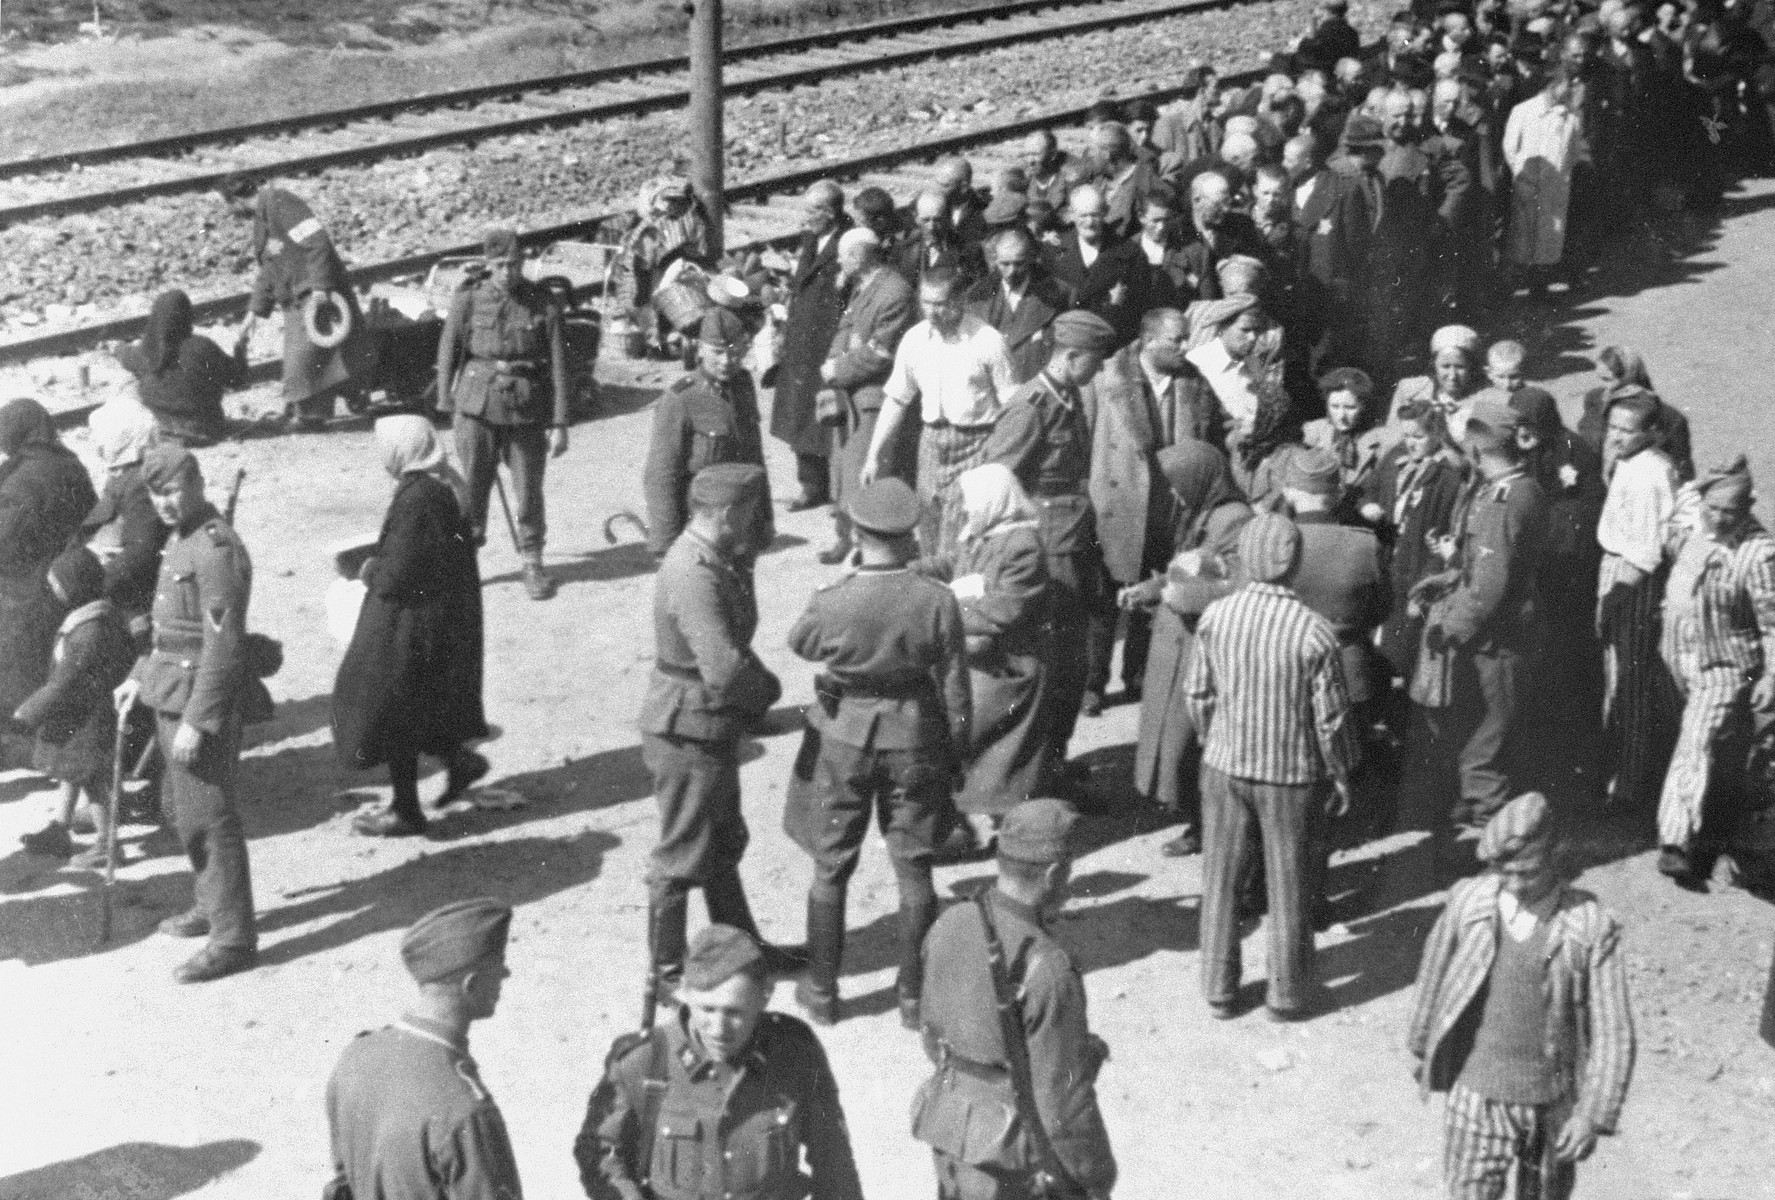 Jews from Subcarpathian Rus undergo a selection on the ramp at Auschwitz-Birkenau.  Among those pictured are Hans Schorr and Heini Preiss.